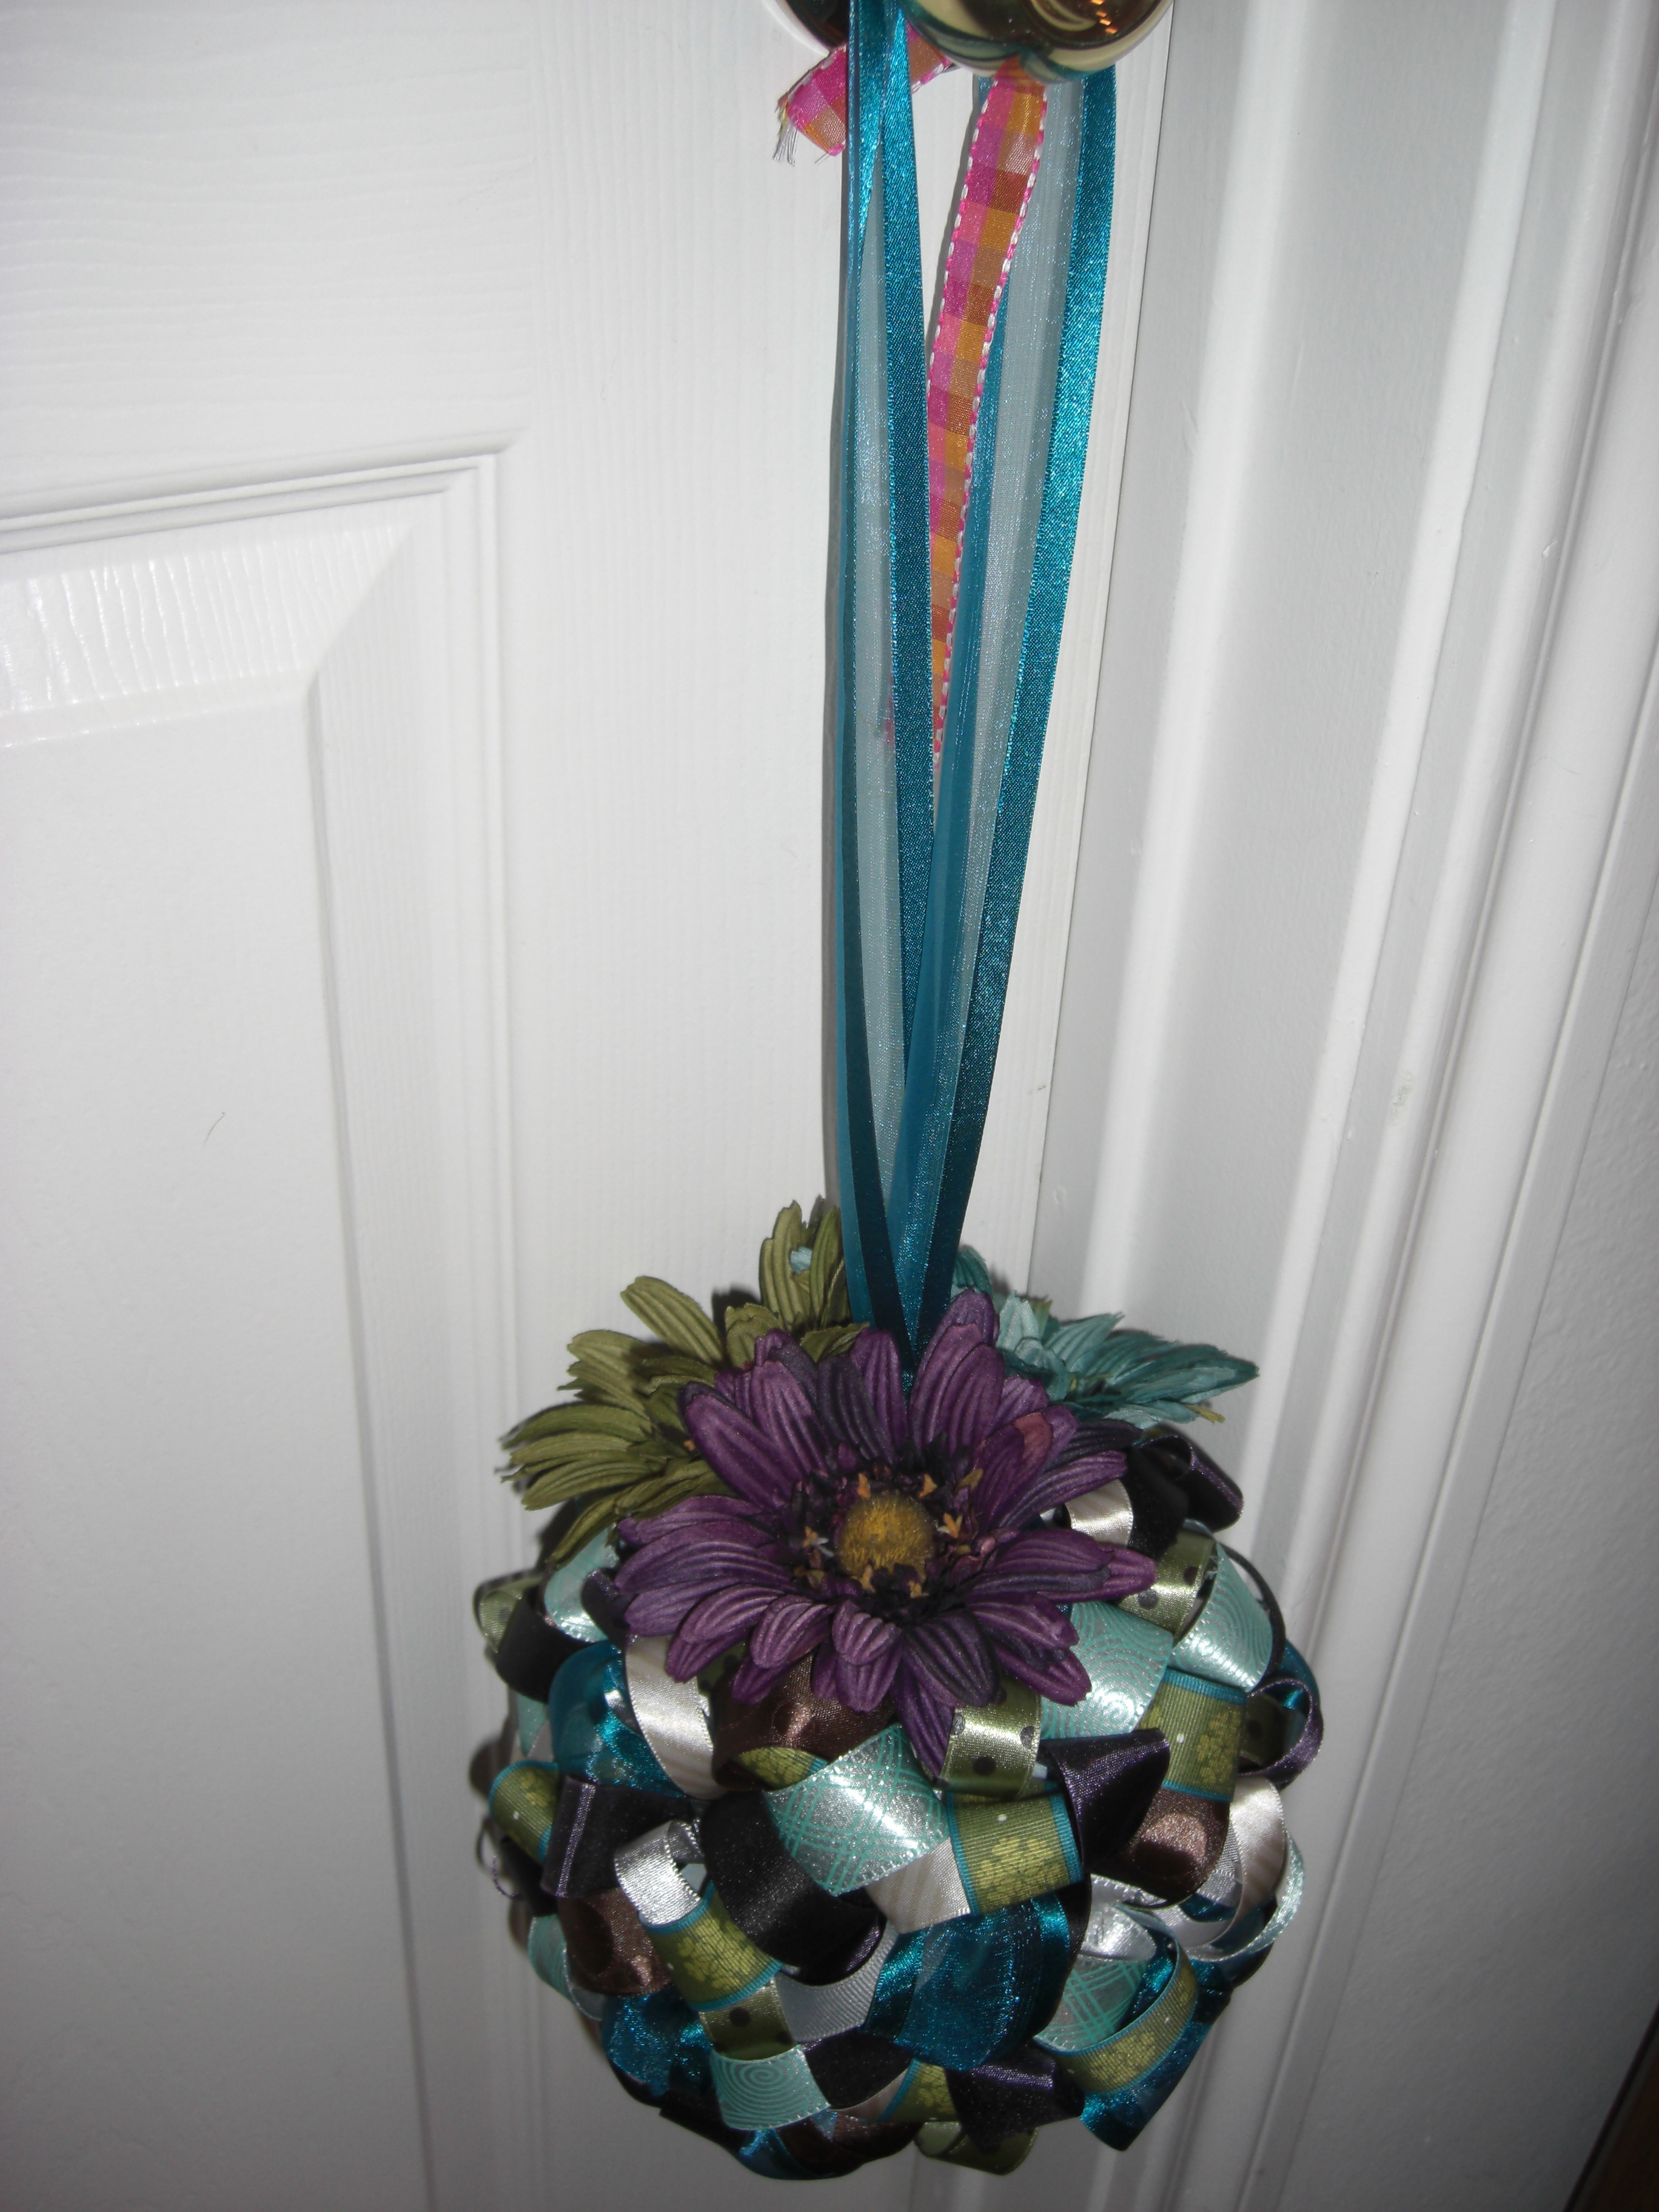 Ceremony, DIY, Reception, Flowers & Decor, purple, blue, green, Decorations, Pomanders